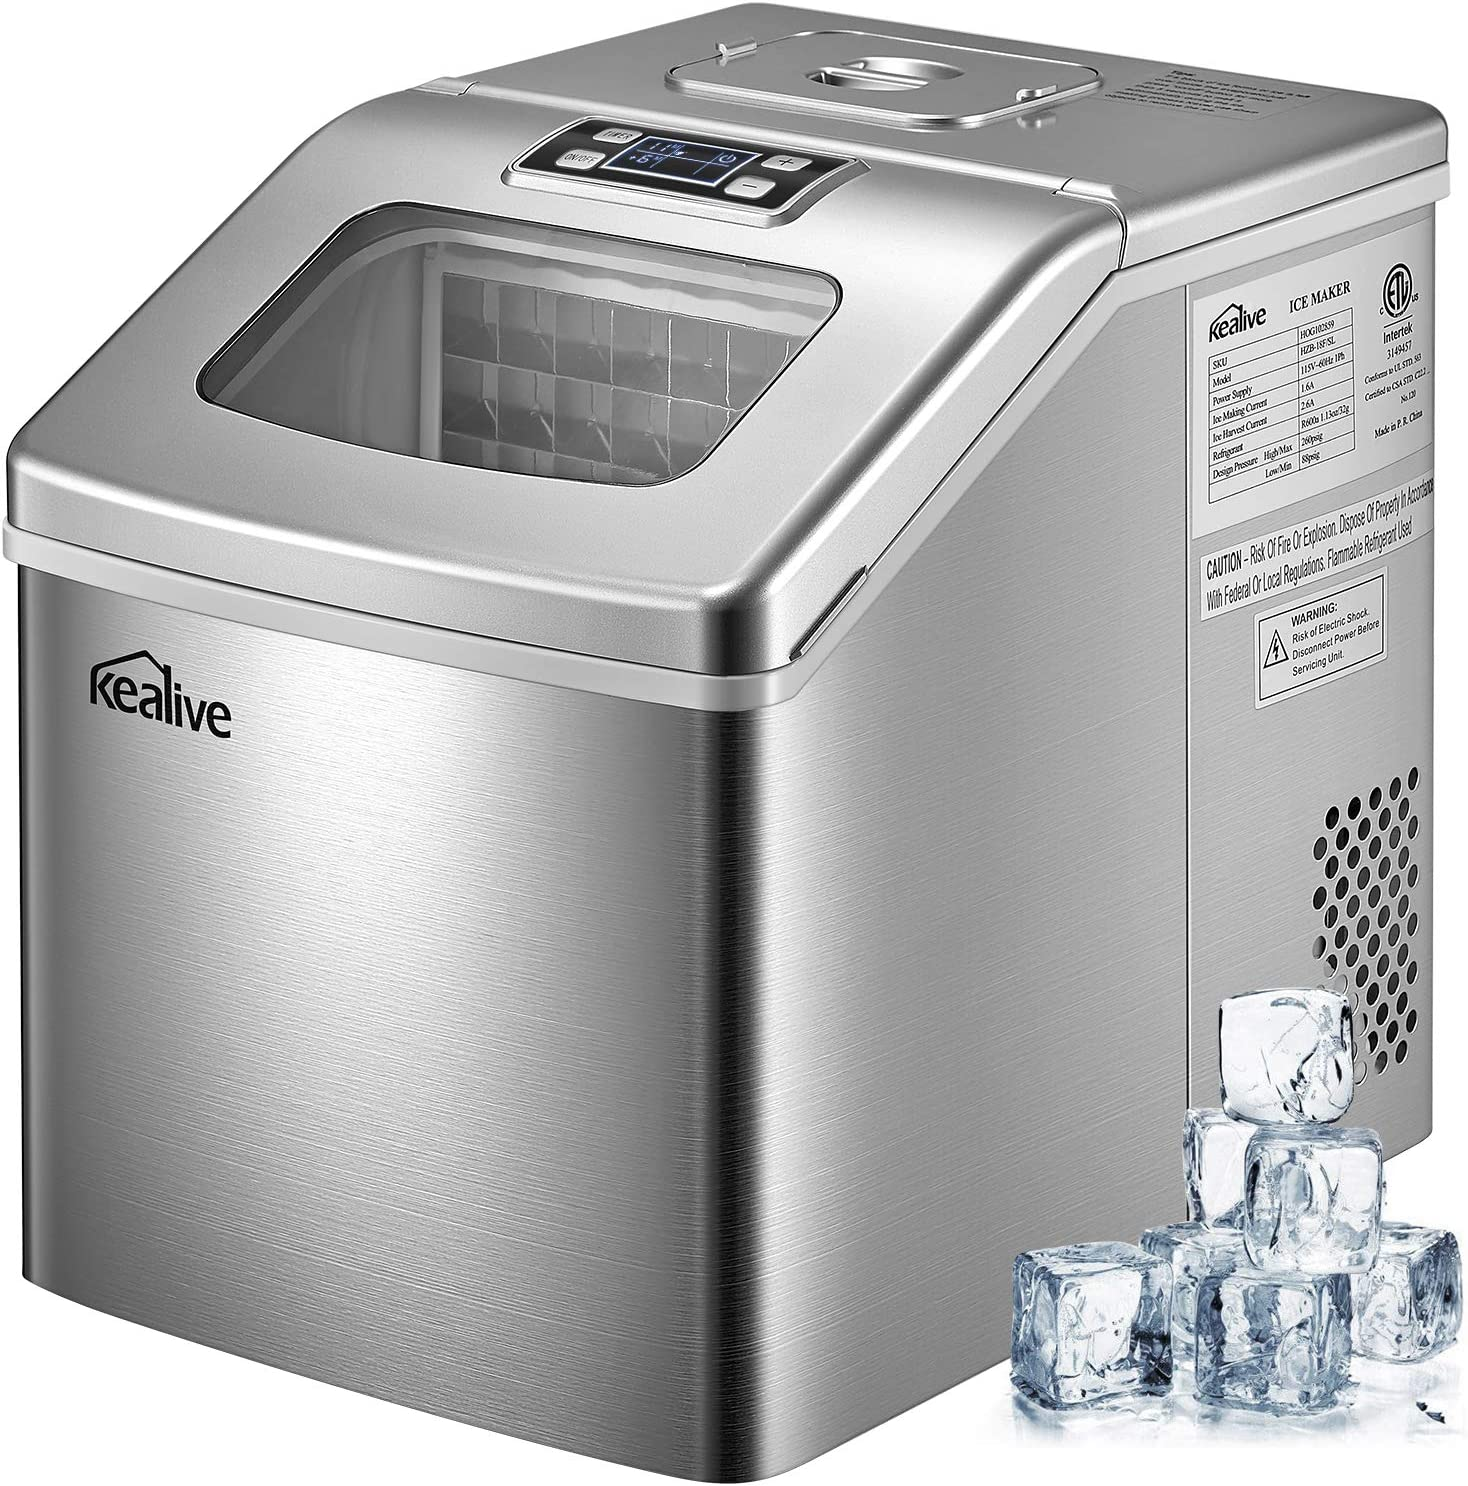 Ice Maker Machine Countertop 40lbs/24H Square Ice Cubes, Portable Ice Maker Clear 24 Ice Cubes Ready in 15 Minutes with 2.4lbs XL Storage Basket and Ice Scoop for Home Kitchen Bar Office